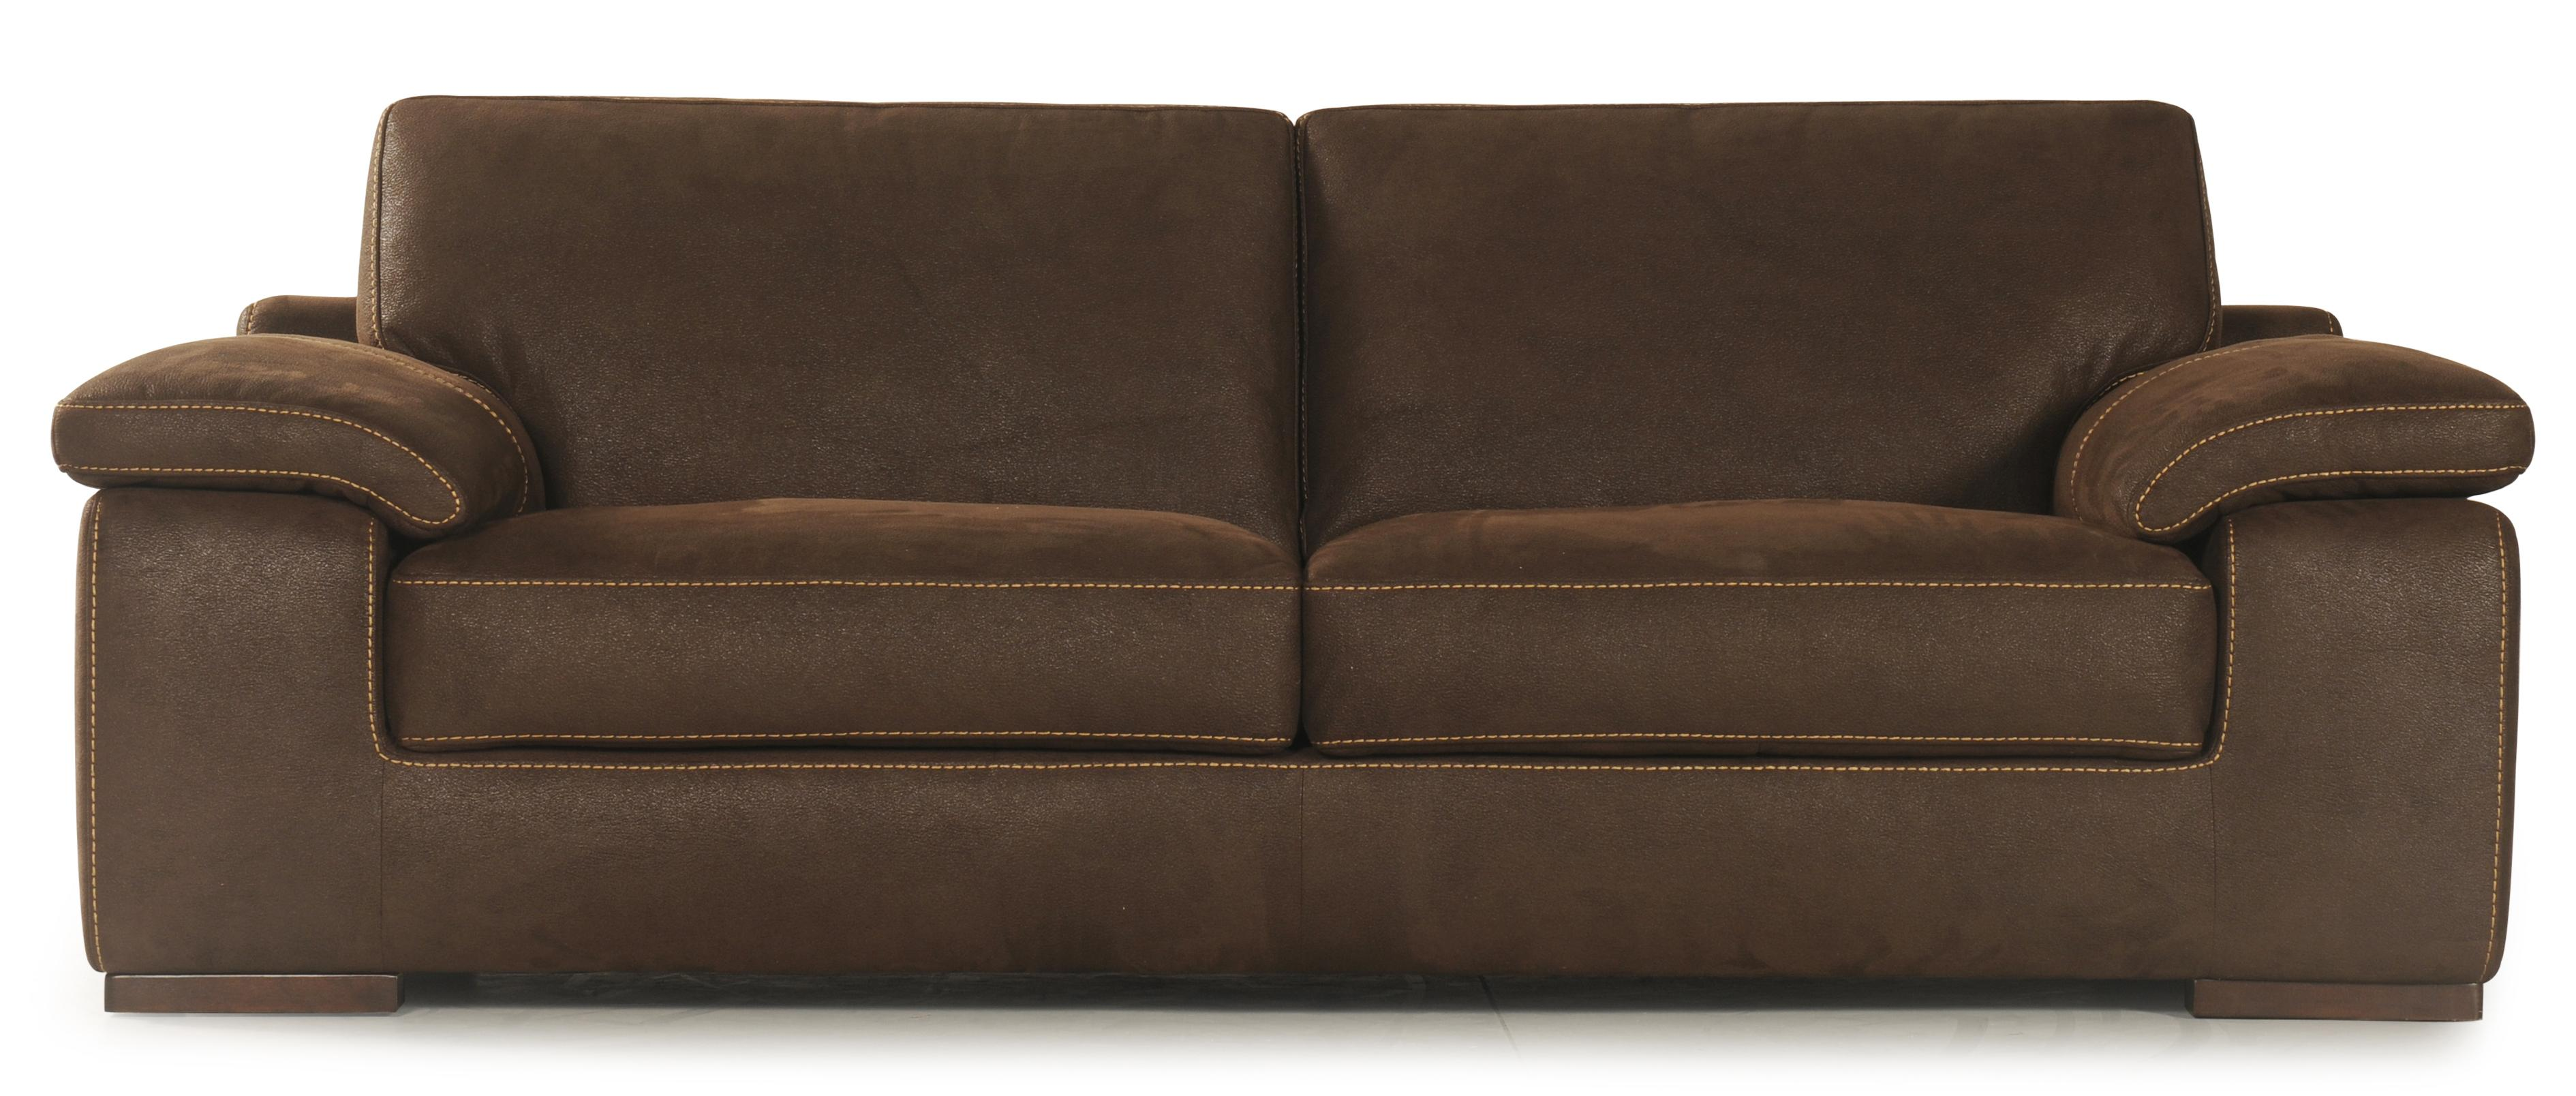 3532 Sofa by Violino at Furniture Superstore - Rochester, MN